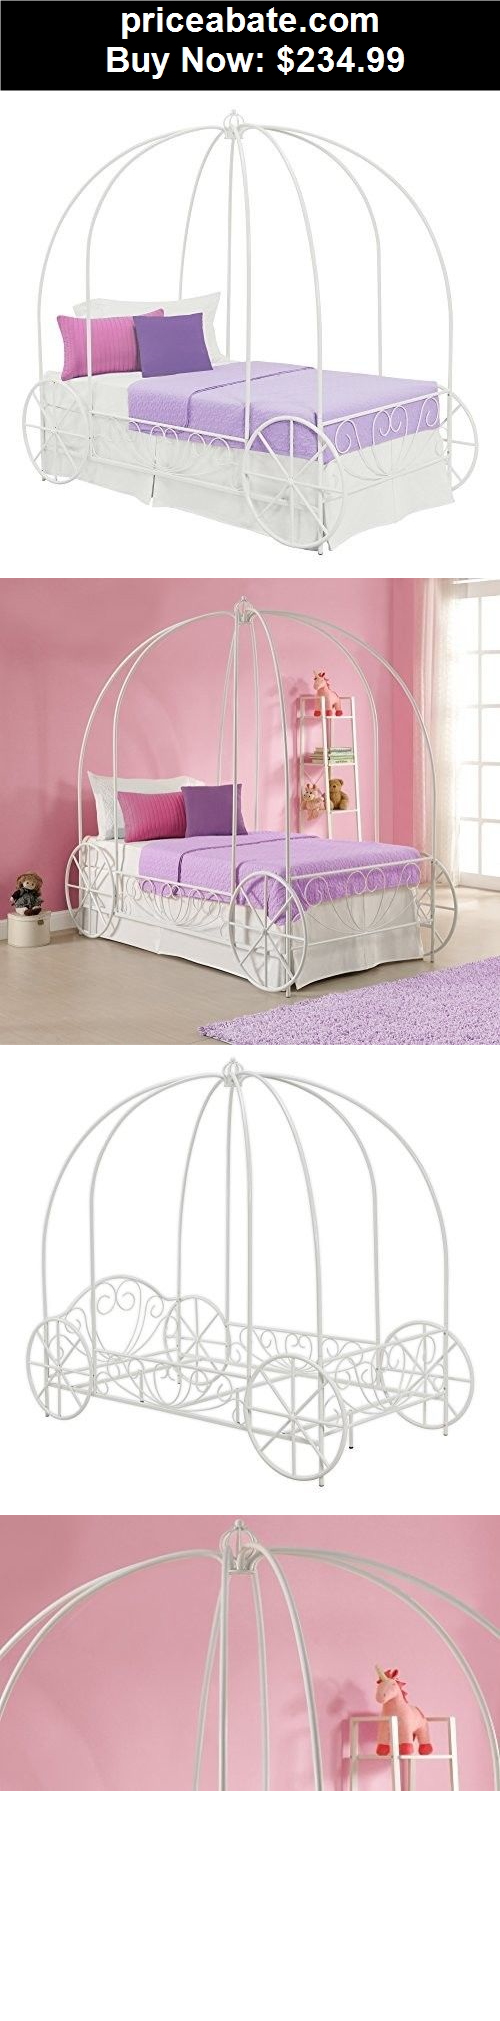 KidsFurniture Princess Carriage Bed Twin White Frame